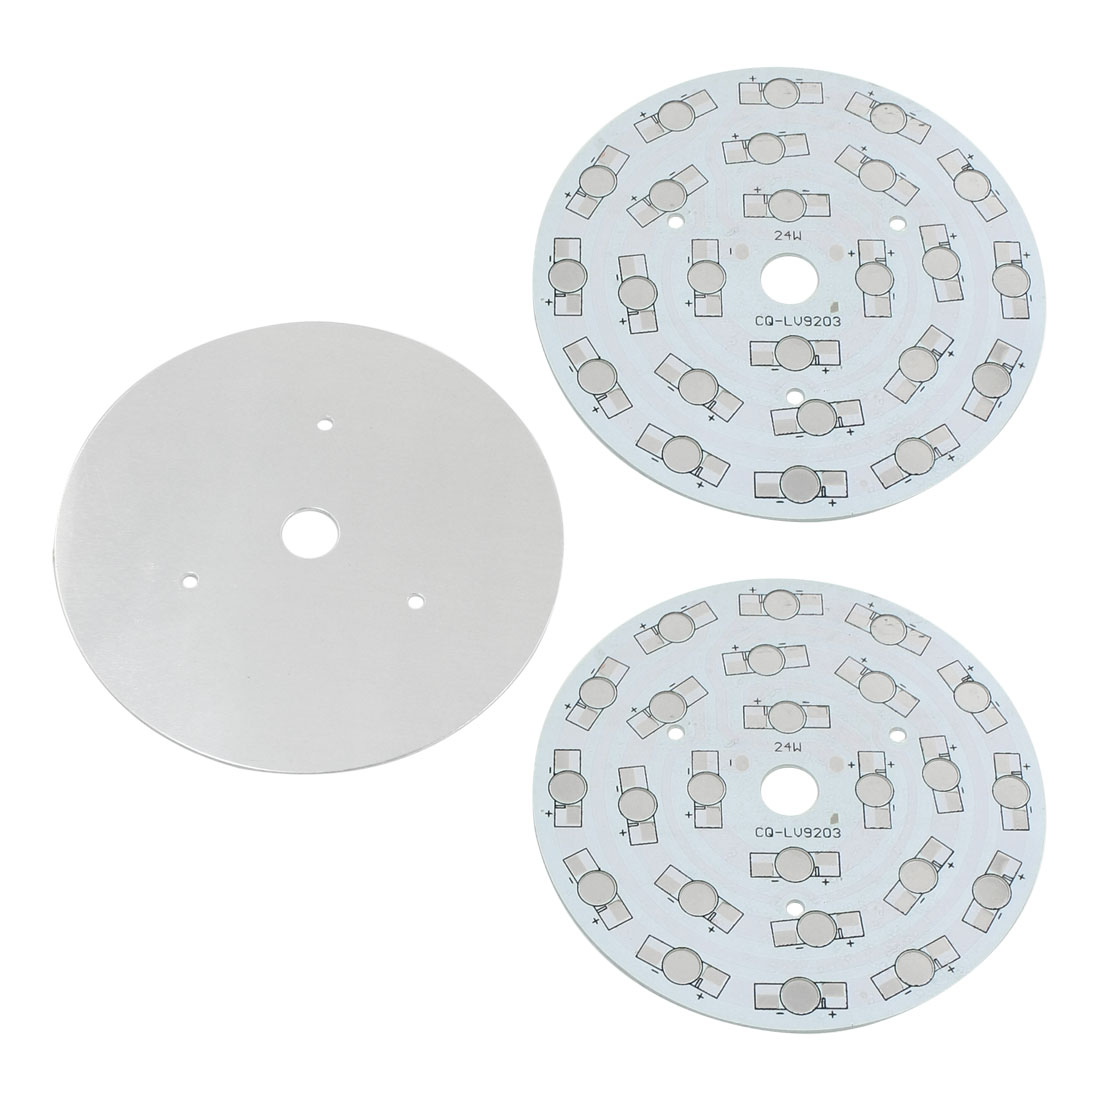 3Pcs 24 x 1W 3W LED High Power DIY Circle Aluminum PCB Circuit Board 108mm Diameter